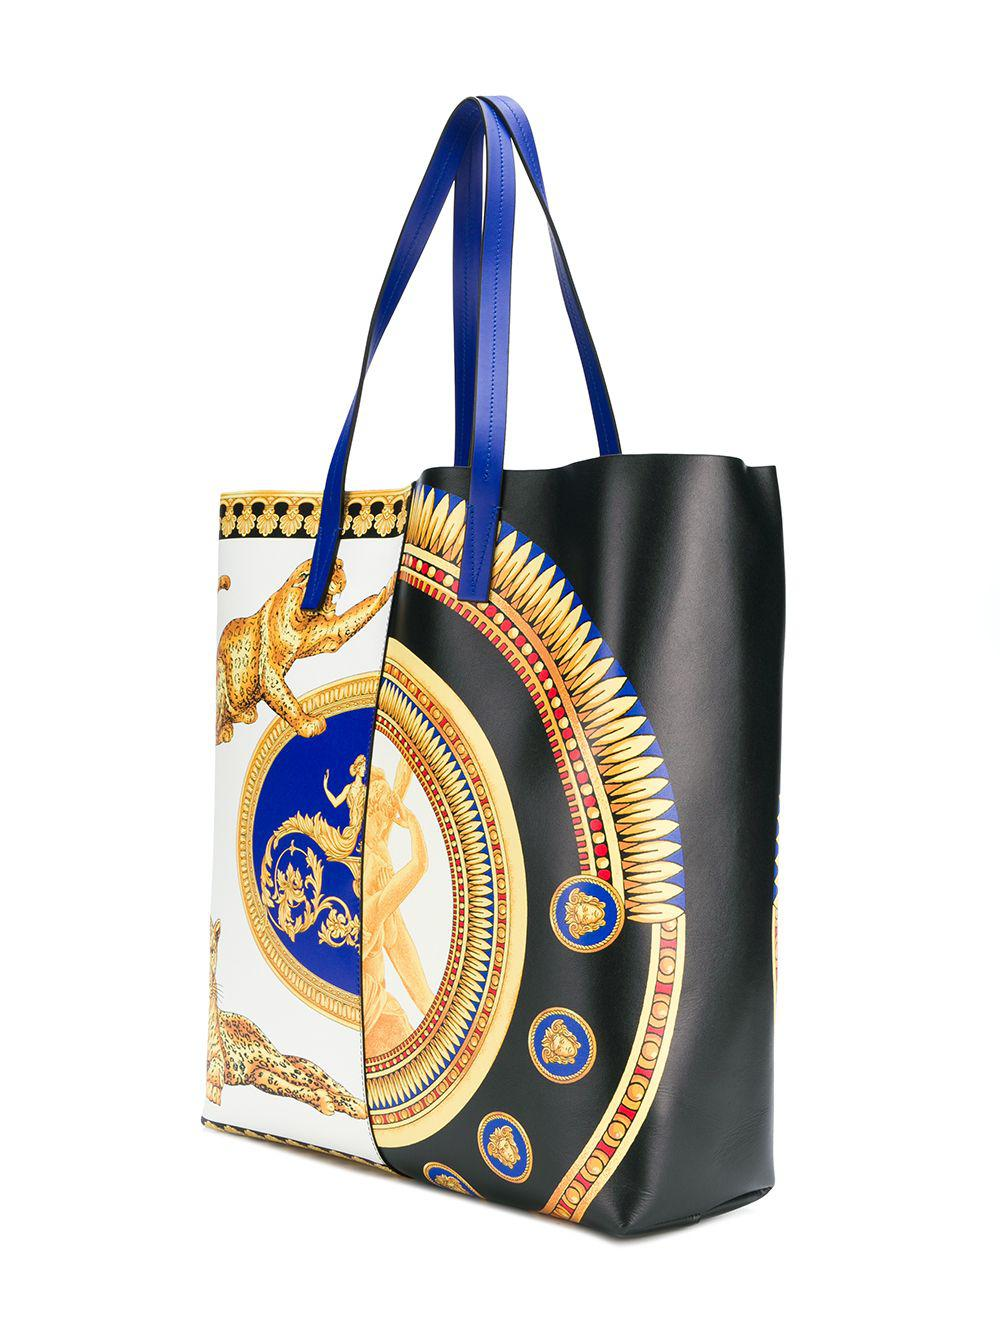 84f5967a30 Lyst - Versace Baroque Print Tote Bag in Black